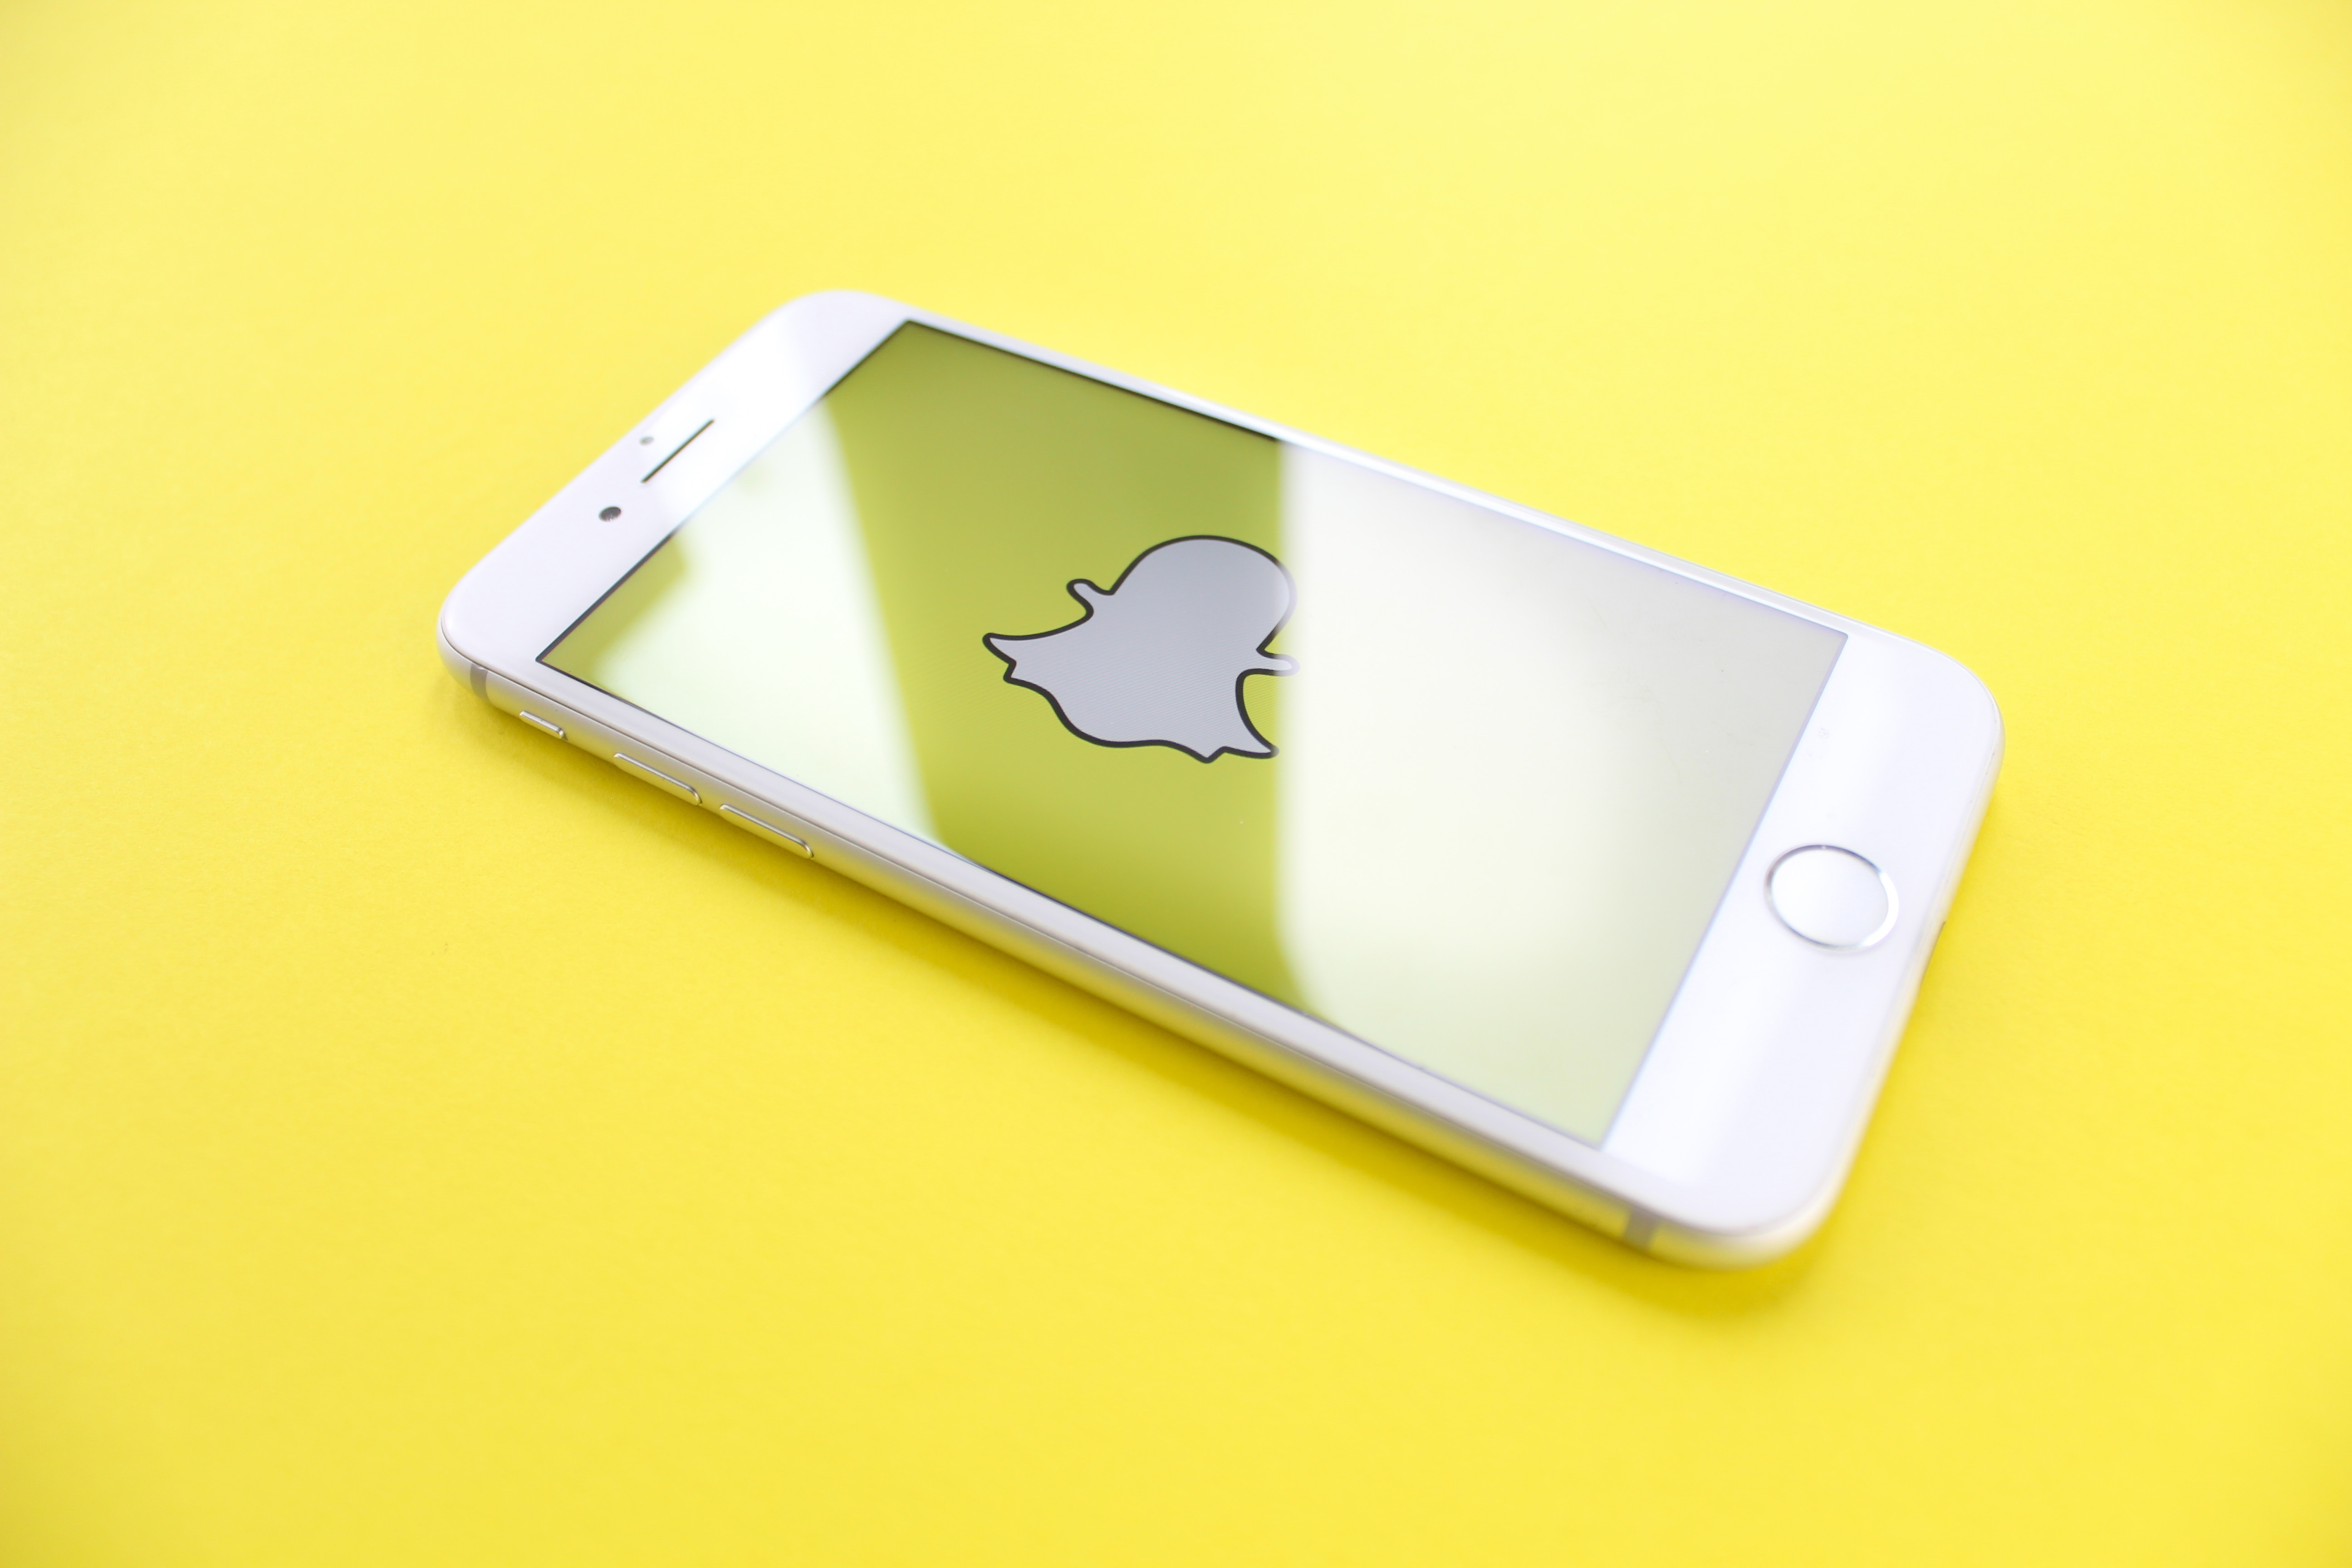 Snapchat on iPhone with yellow background